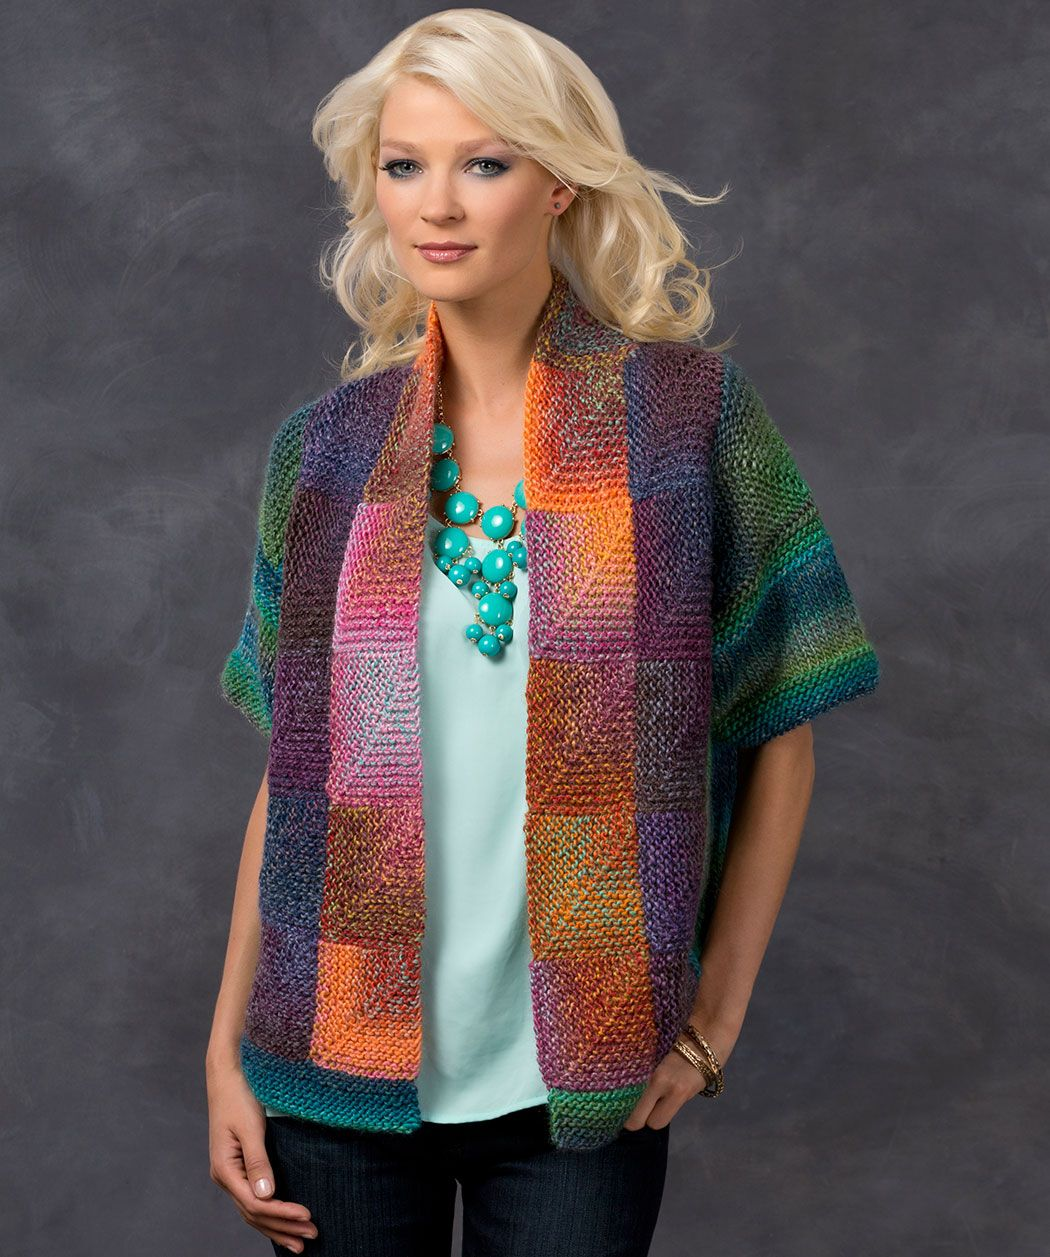 Mitered square jacket knitting pattern knit redheartyarns free knitting pattern for mitered square jacket julie farmers colorful cardigan is designed for multi color yarn bankloansurffo Image collections